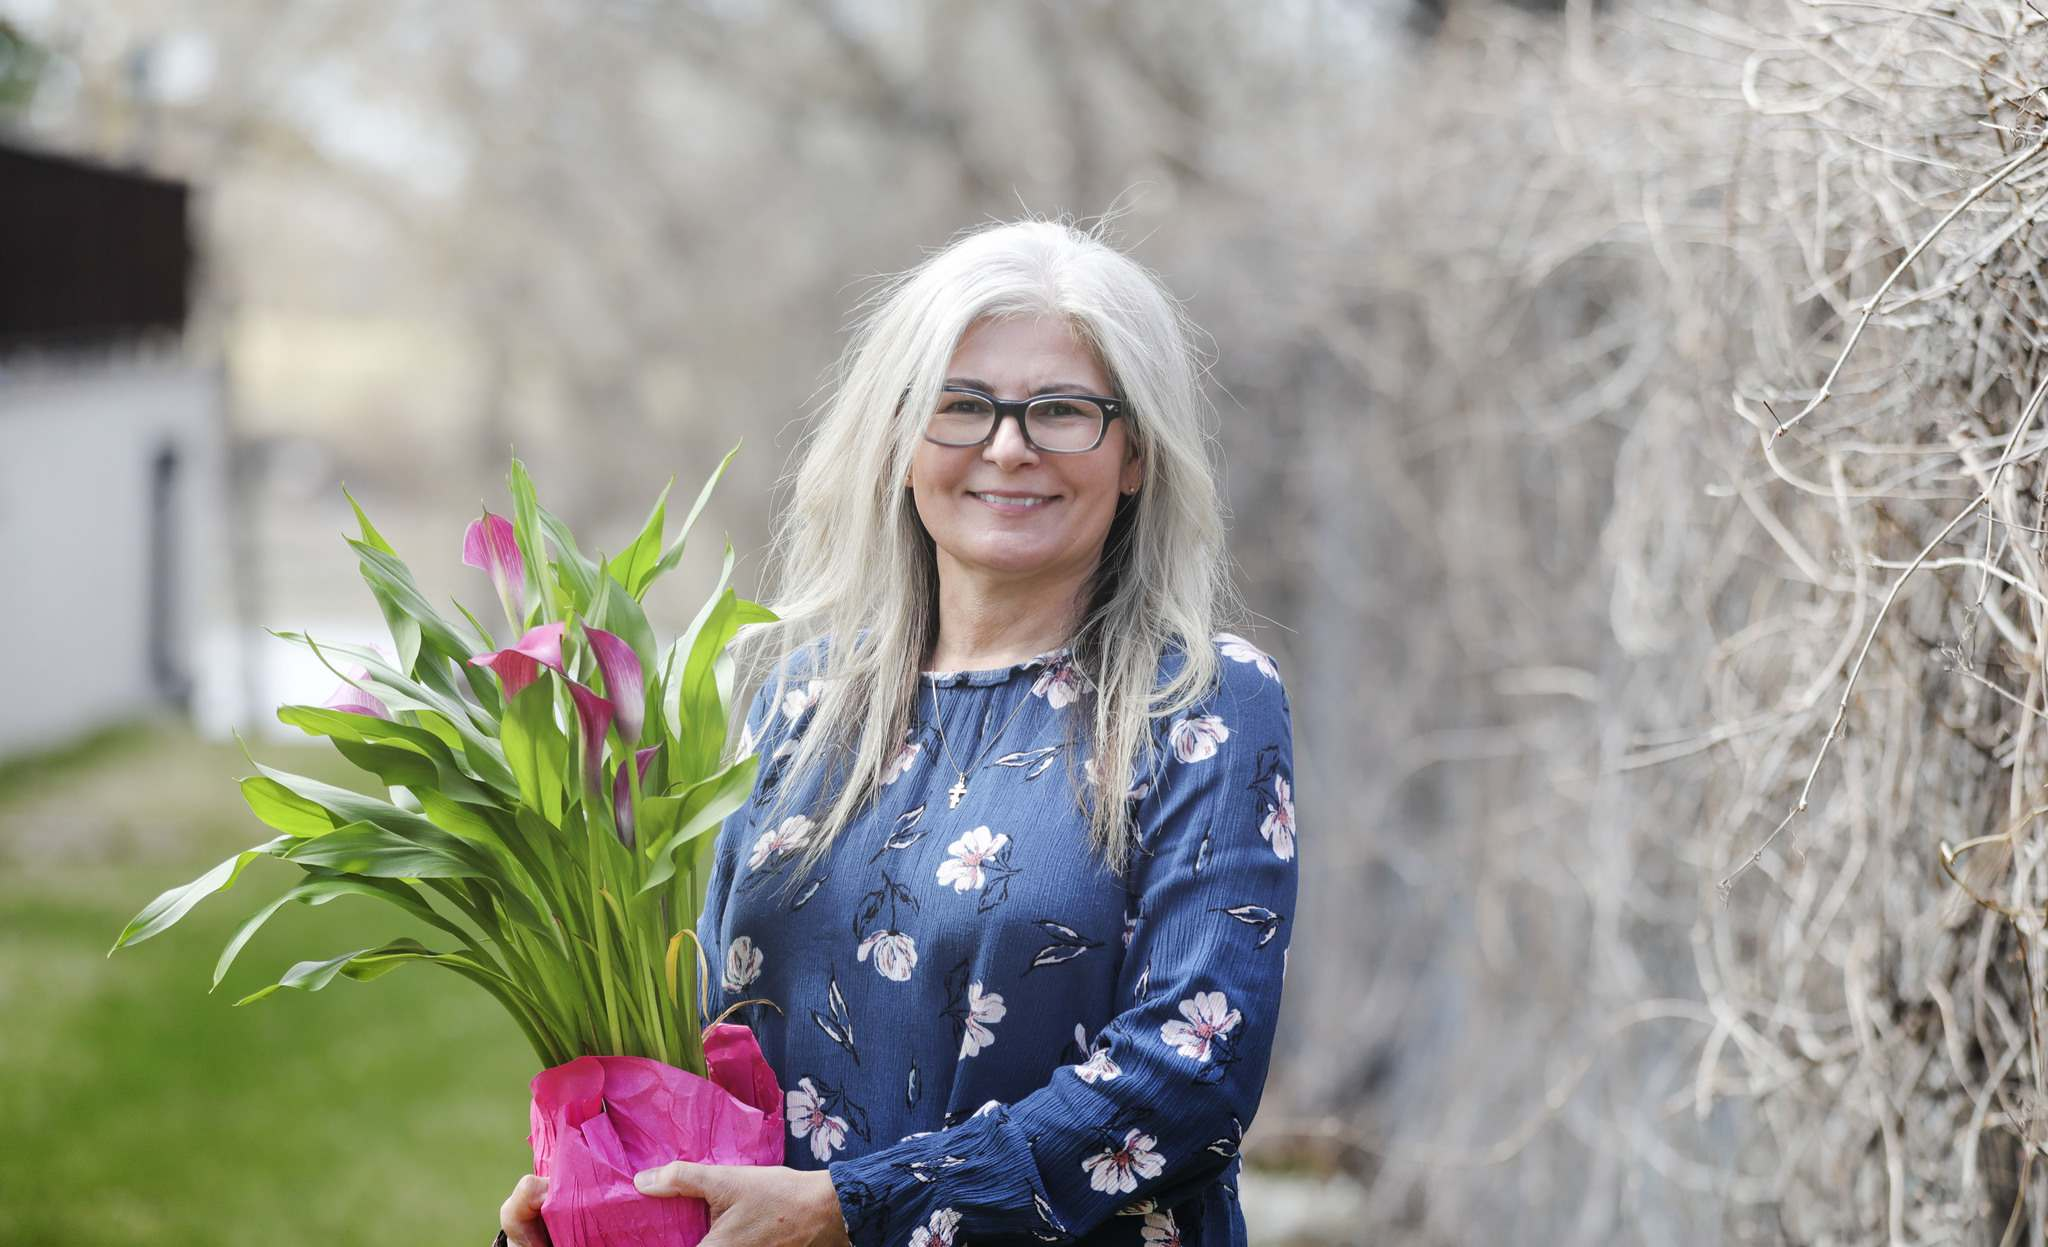 Nadine Orchard takes care of her elderly mother; she'll take flowers to the personal care home for Mother's Day.</p>